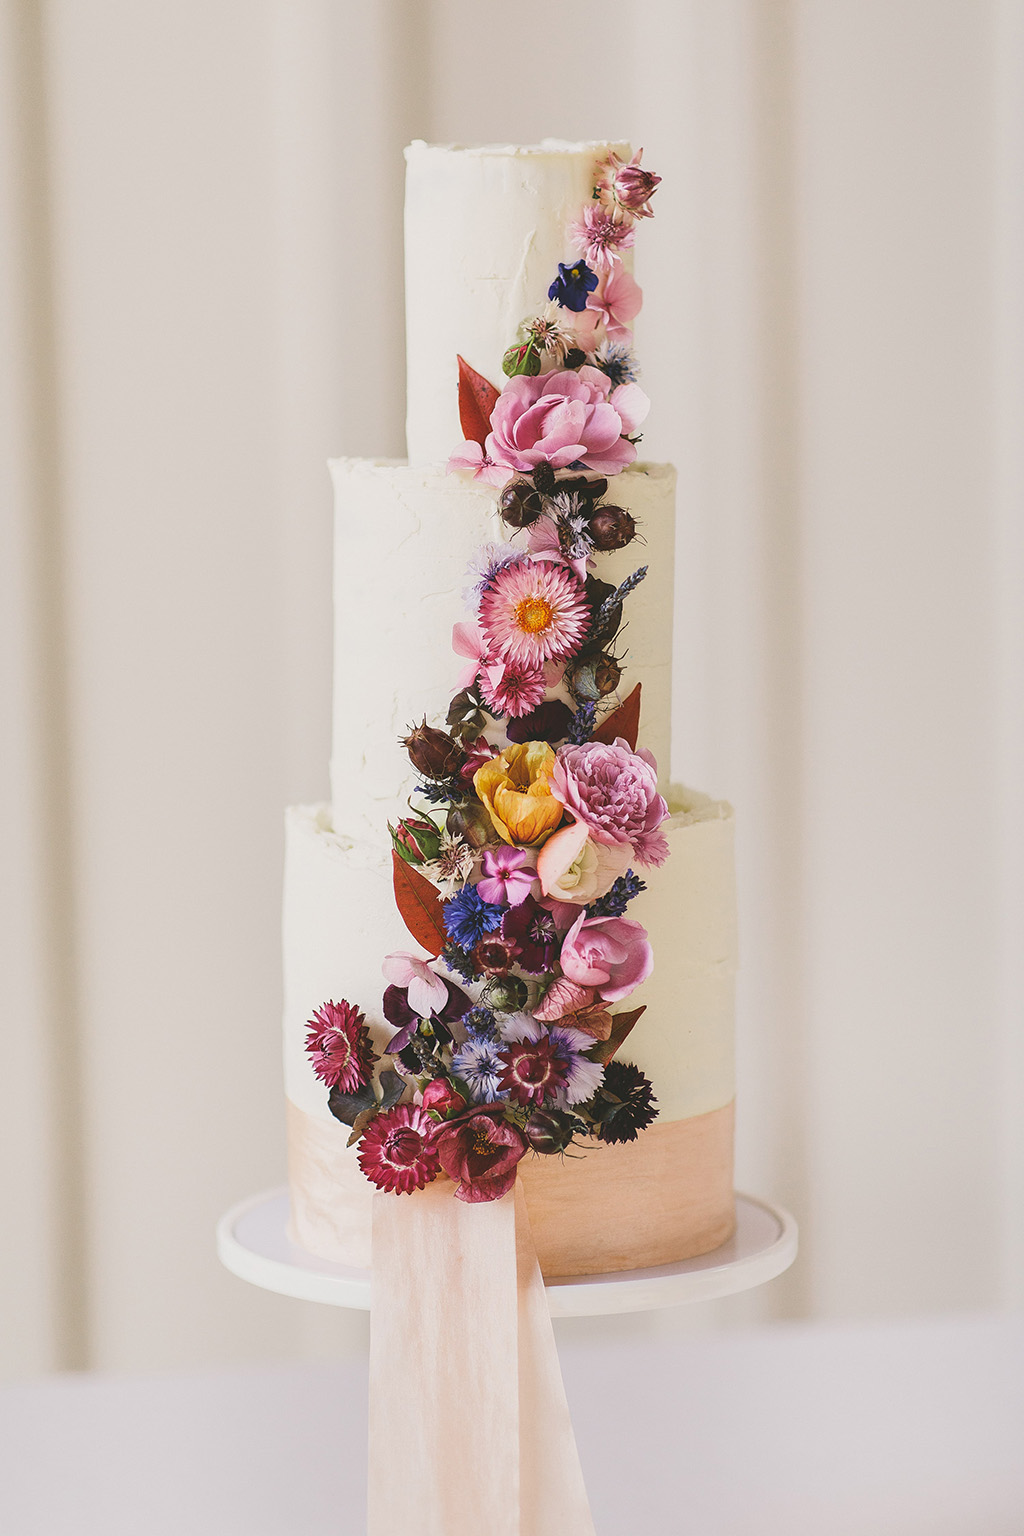 Tiered wedding cake with beautiful dried flower cascade, Scrumptious Bakes by Emma